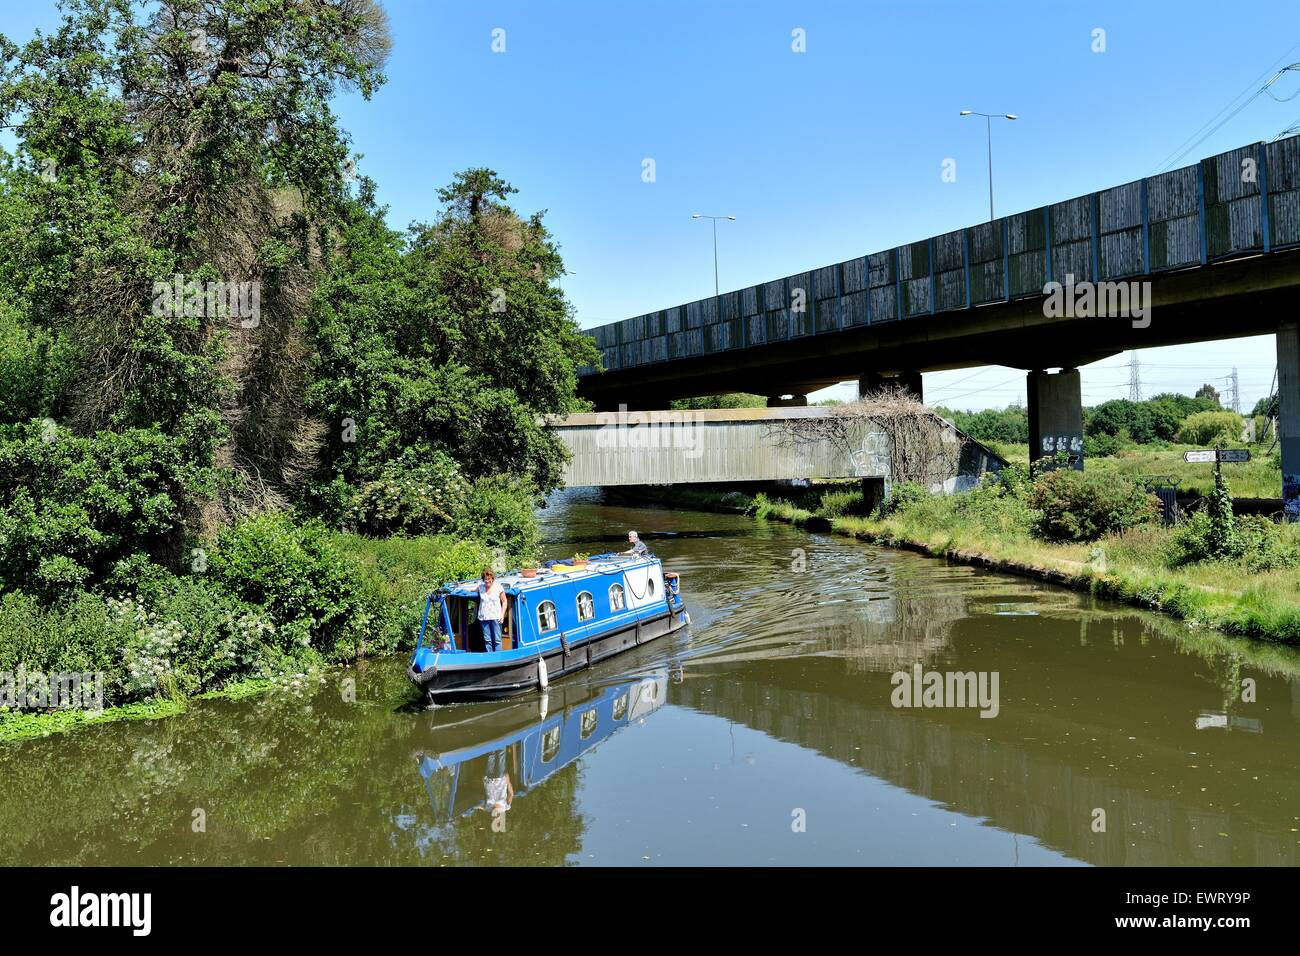 Narrow boat on the Basingstoke canal at New Haw Surrey UK - Stock Image